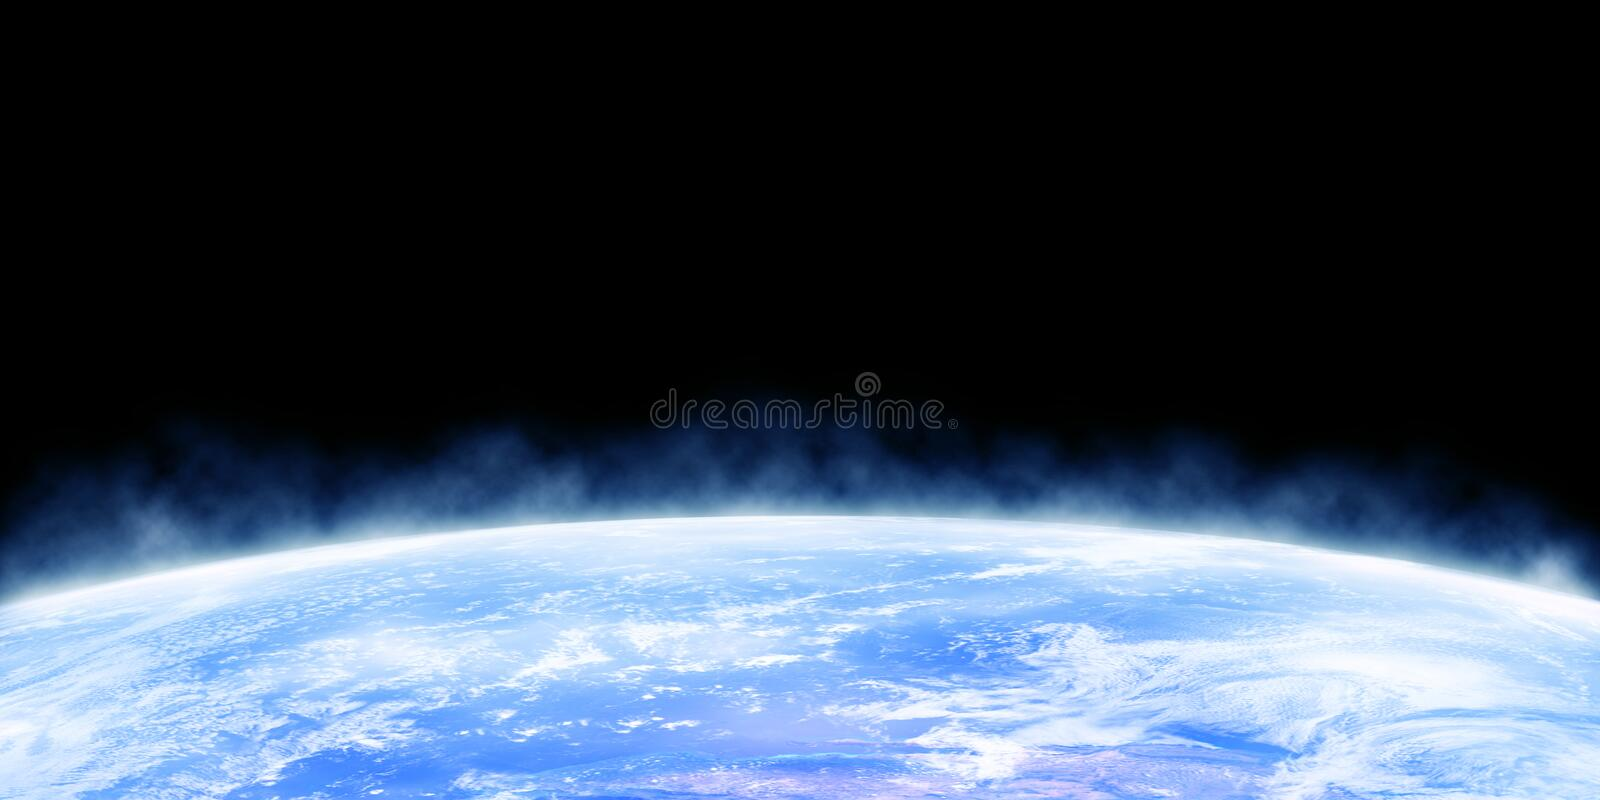 Horizon de la terre illustration stock